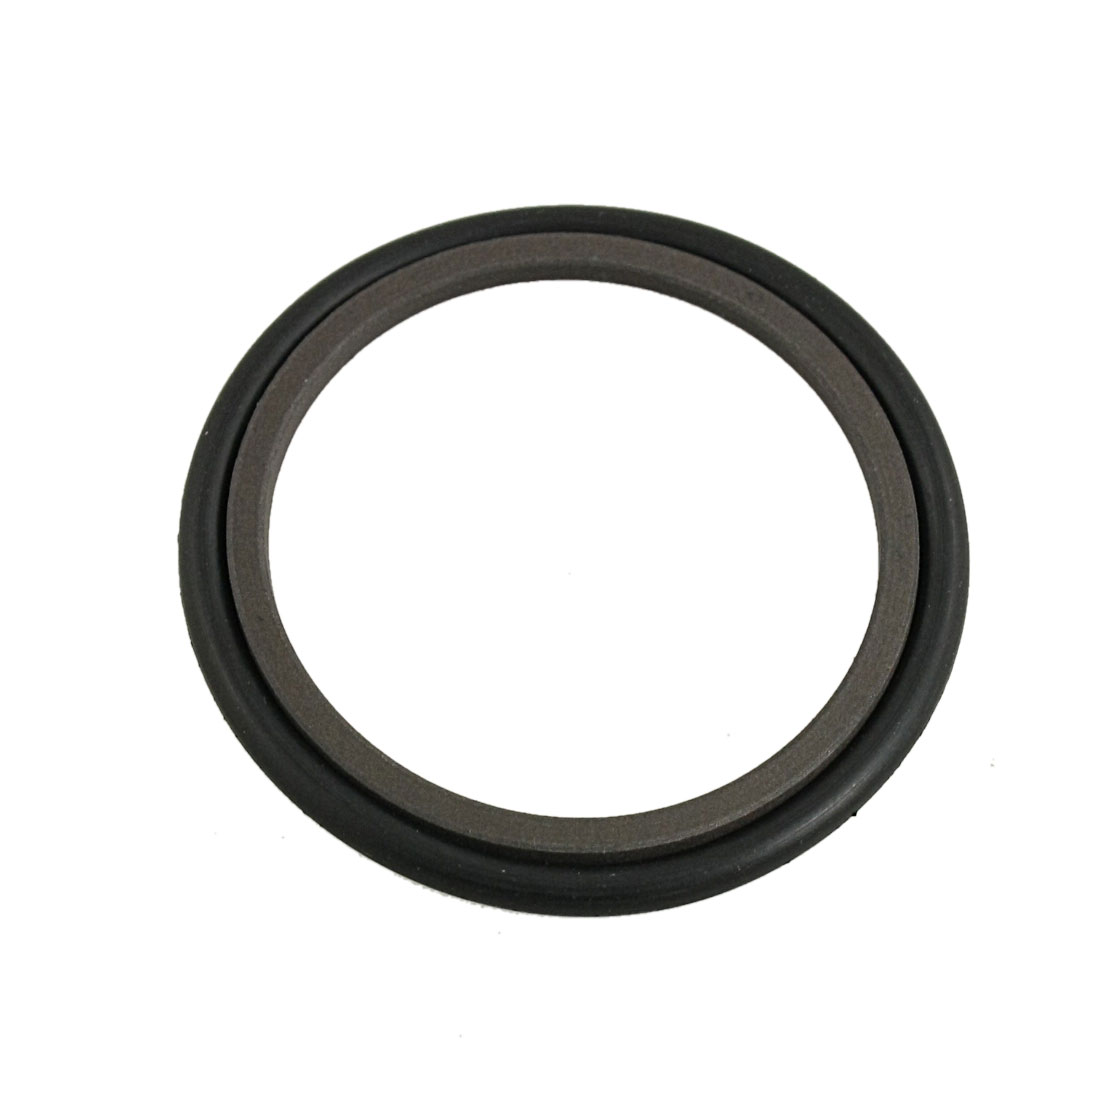 Black Brown 42mm x 53mm x 3.3mm NBR PTFE Rod Step Seal Ring